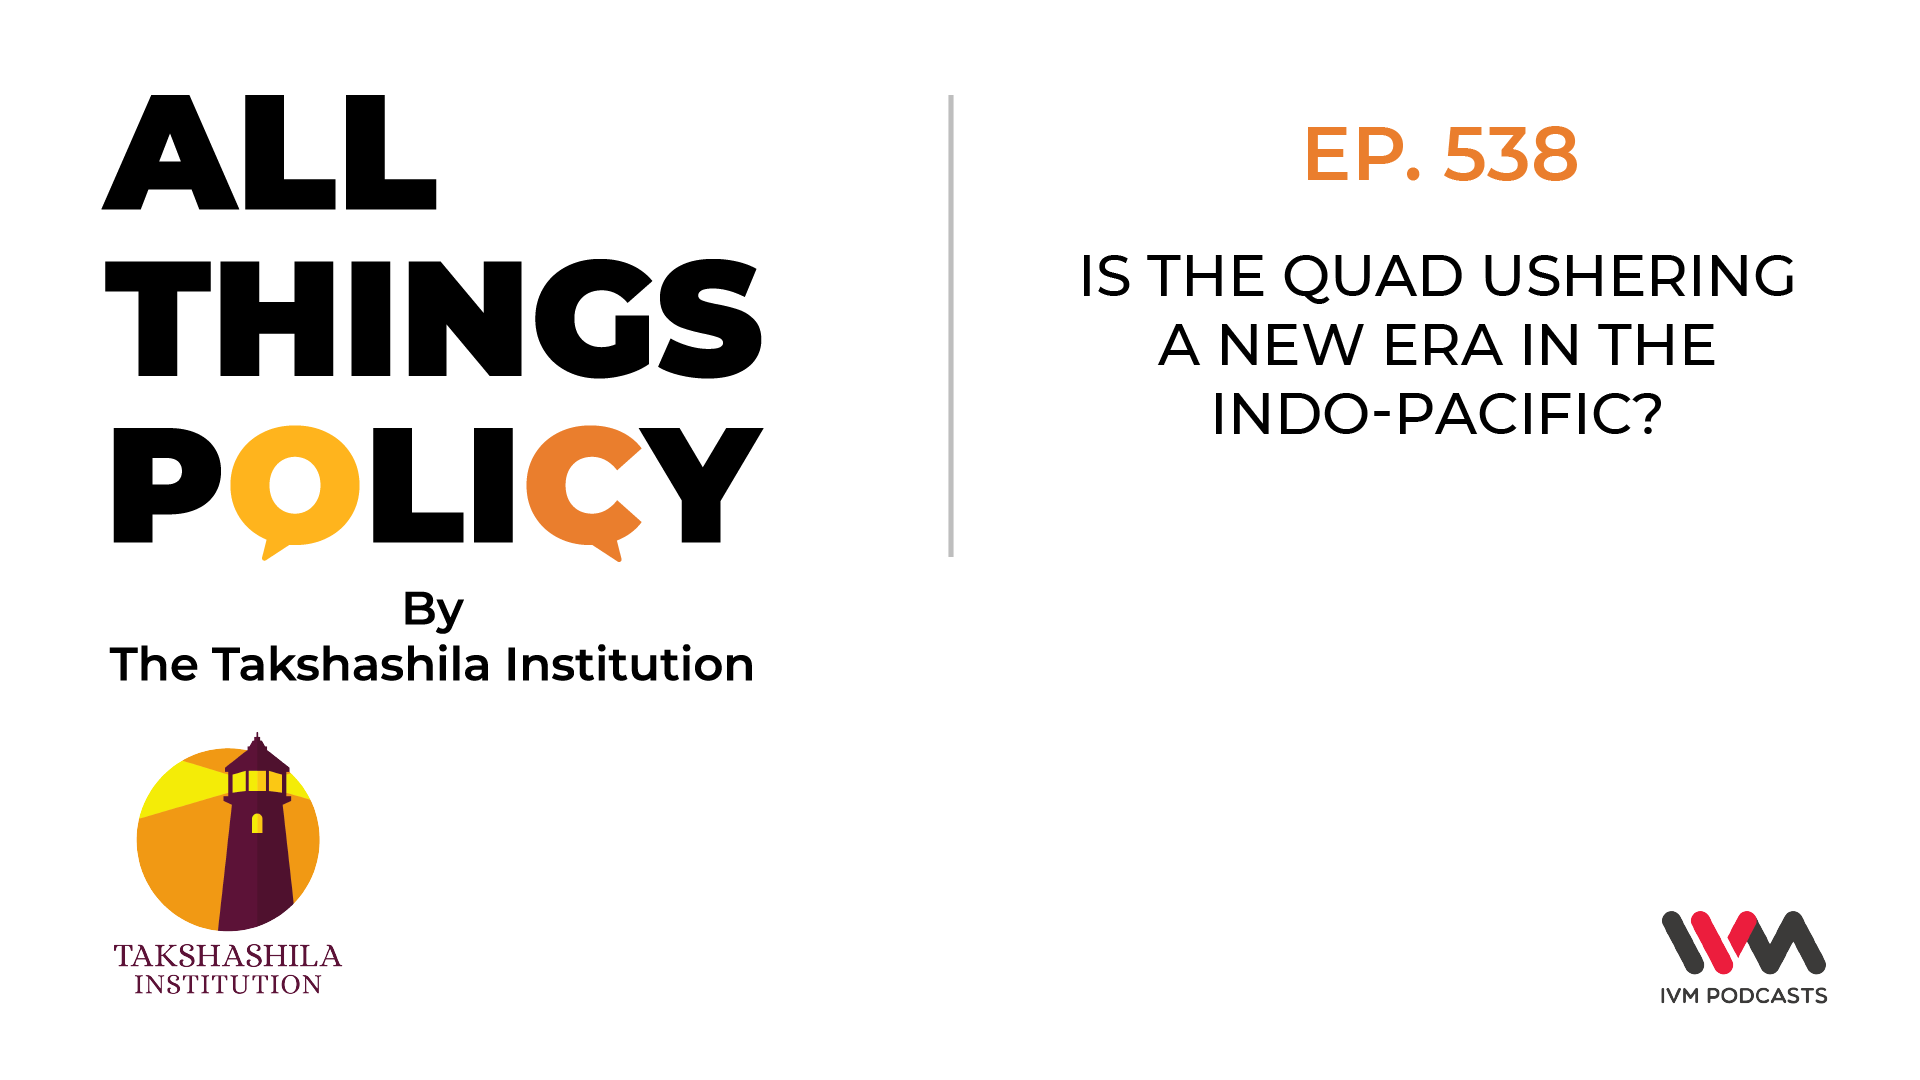 Ep. 538: Is the Quad ushering a new era in the Indo-Pacific?